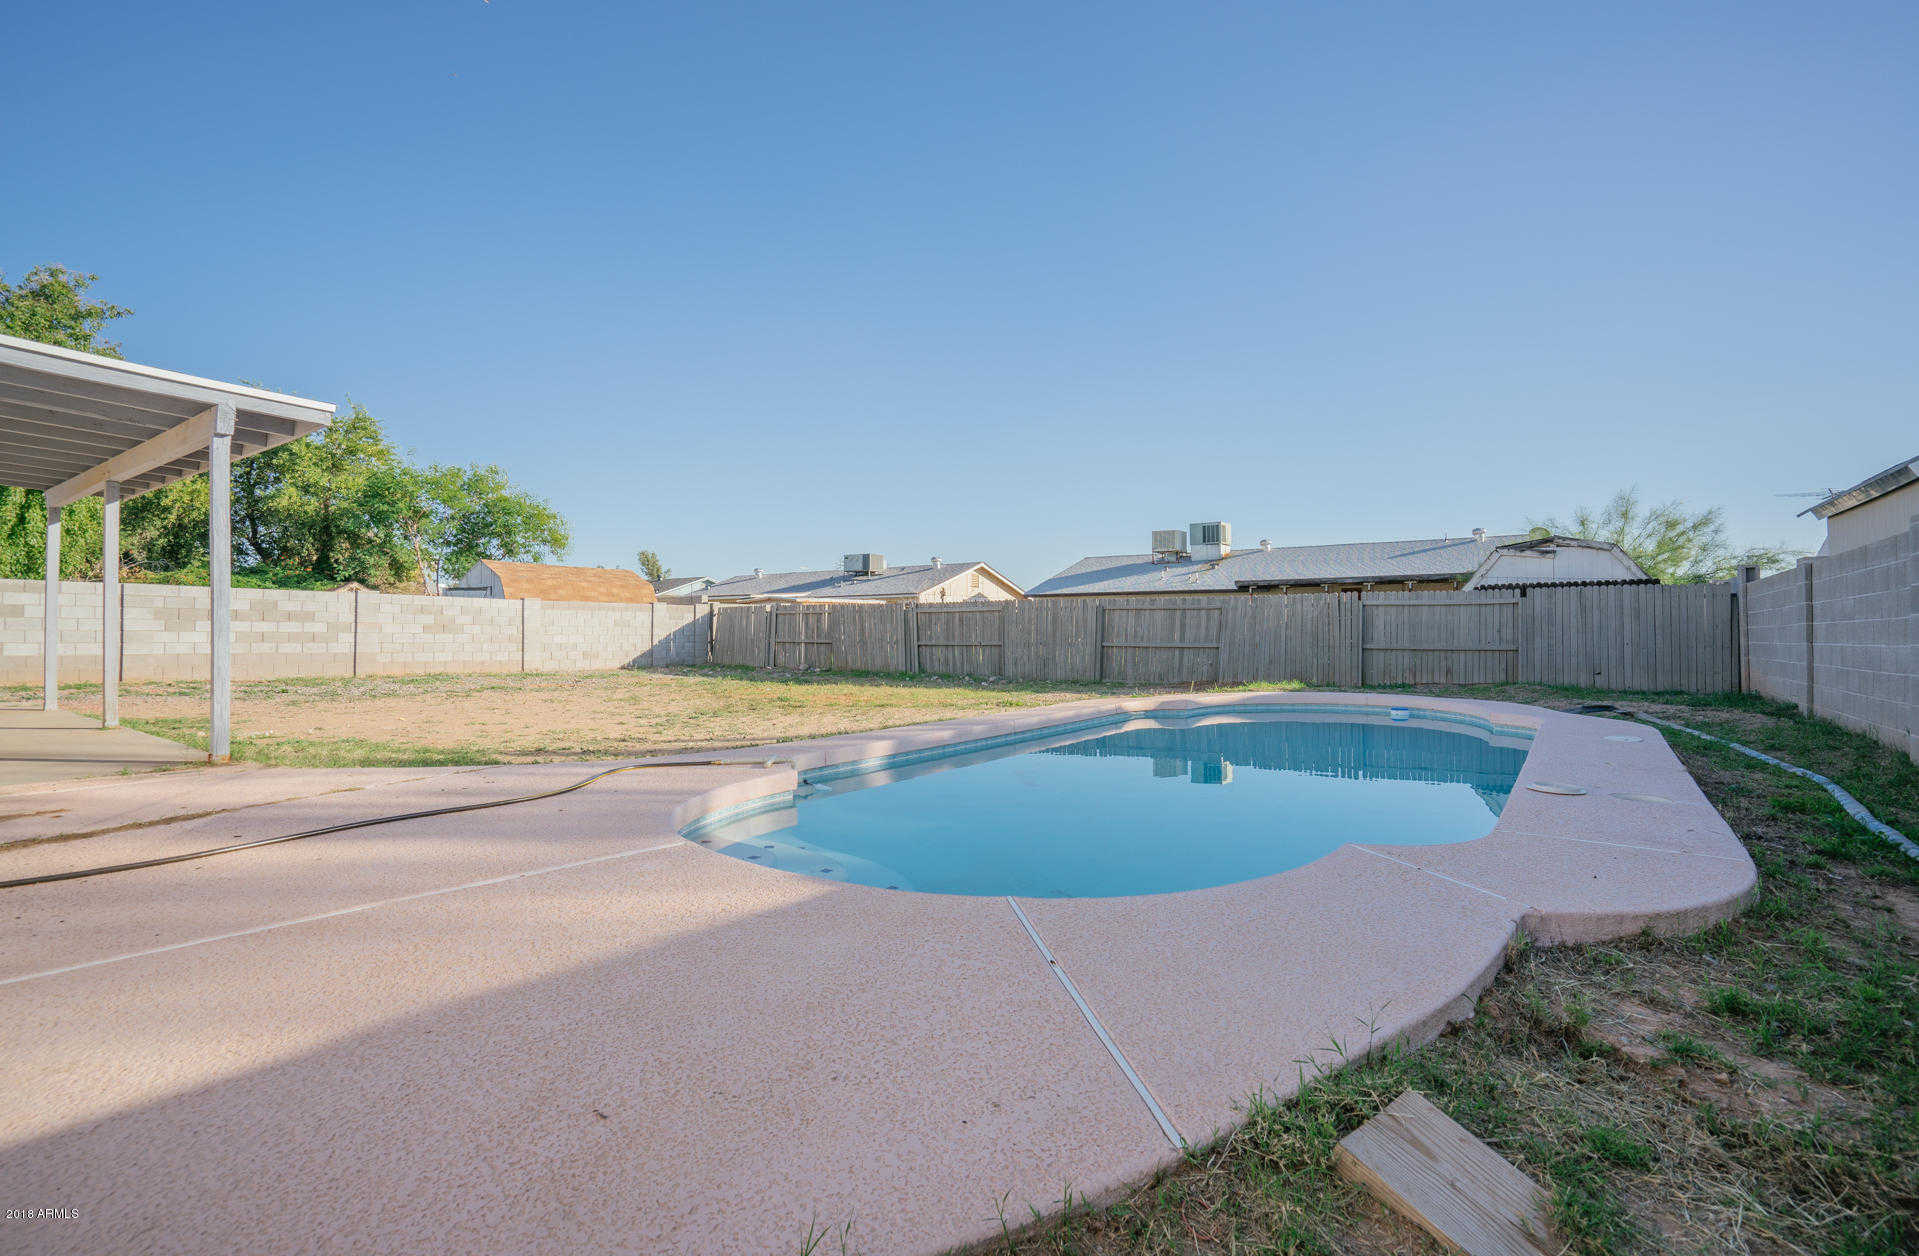 $213,000 - 3Br/2Ba - Home for Sale in Parkview West Unit Two Lot 112-232, Glendale